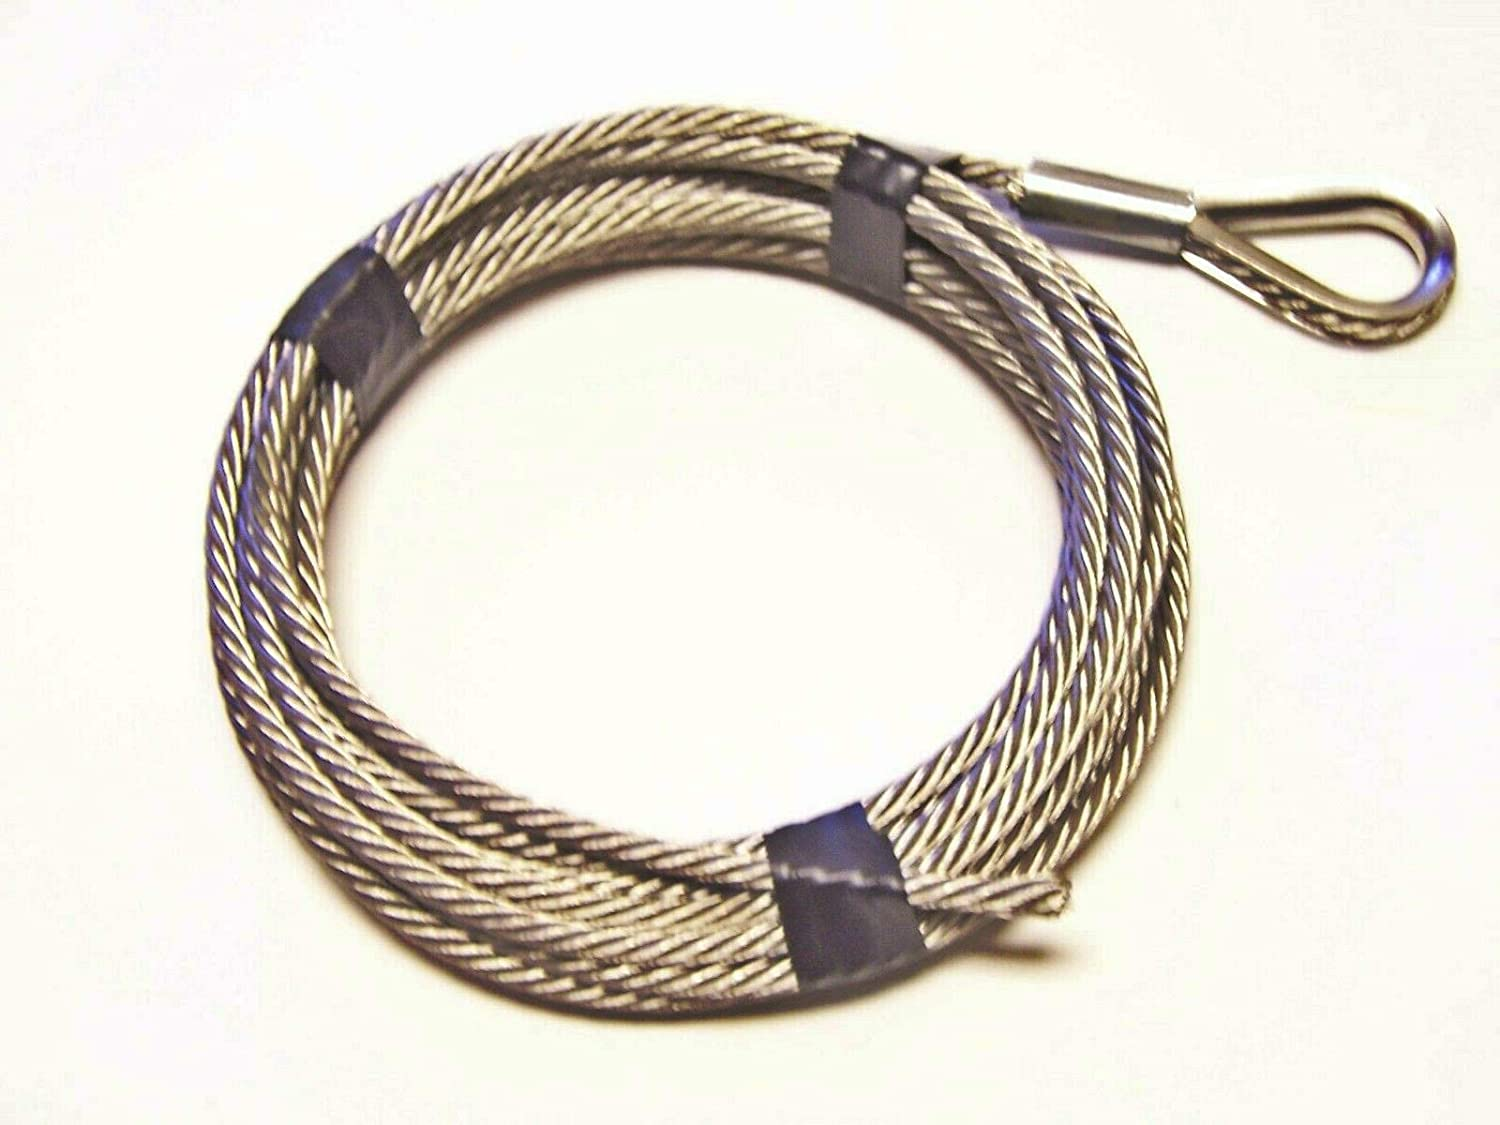 1/4 inch x 25 ft Stainless Steel Winch Cable 7x19 Core